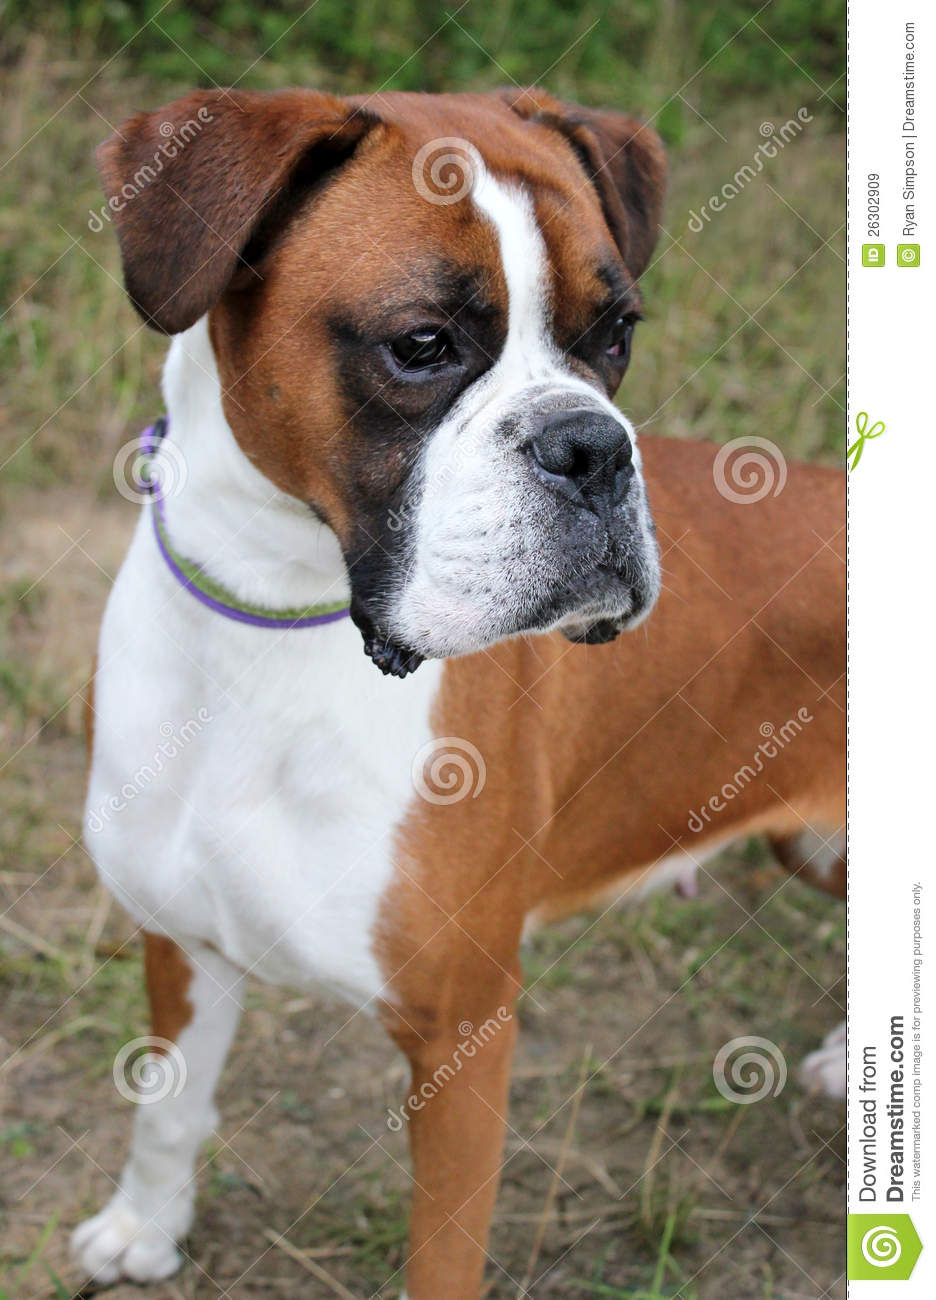 Boxer dog stock image. Image of registered, park, outdoors ...